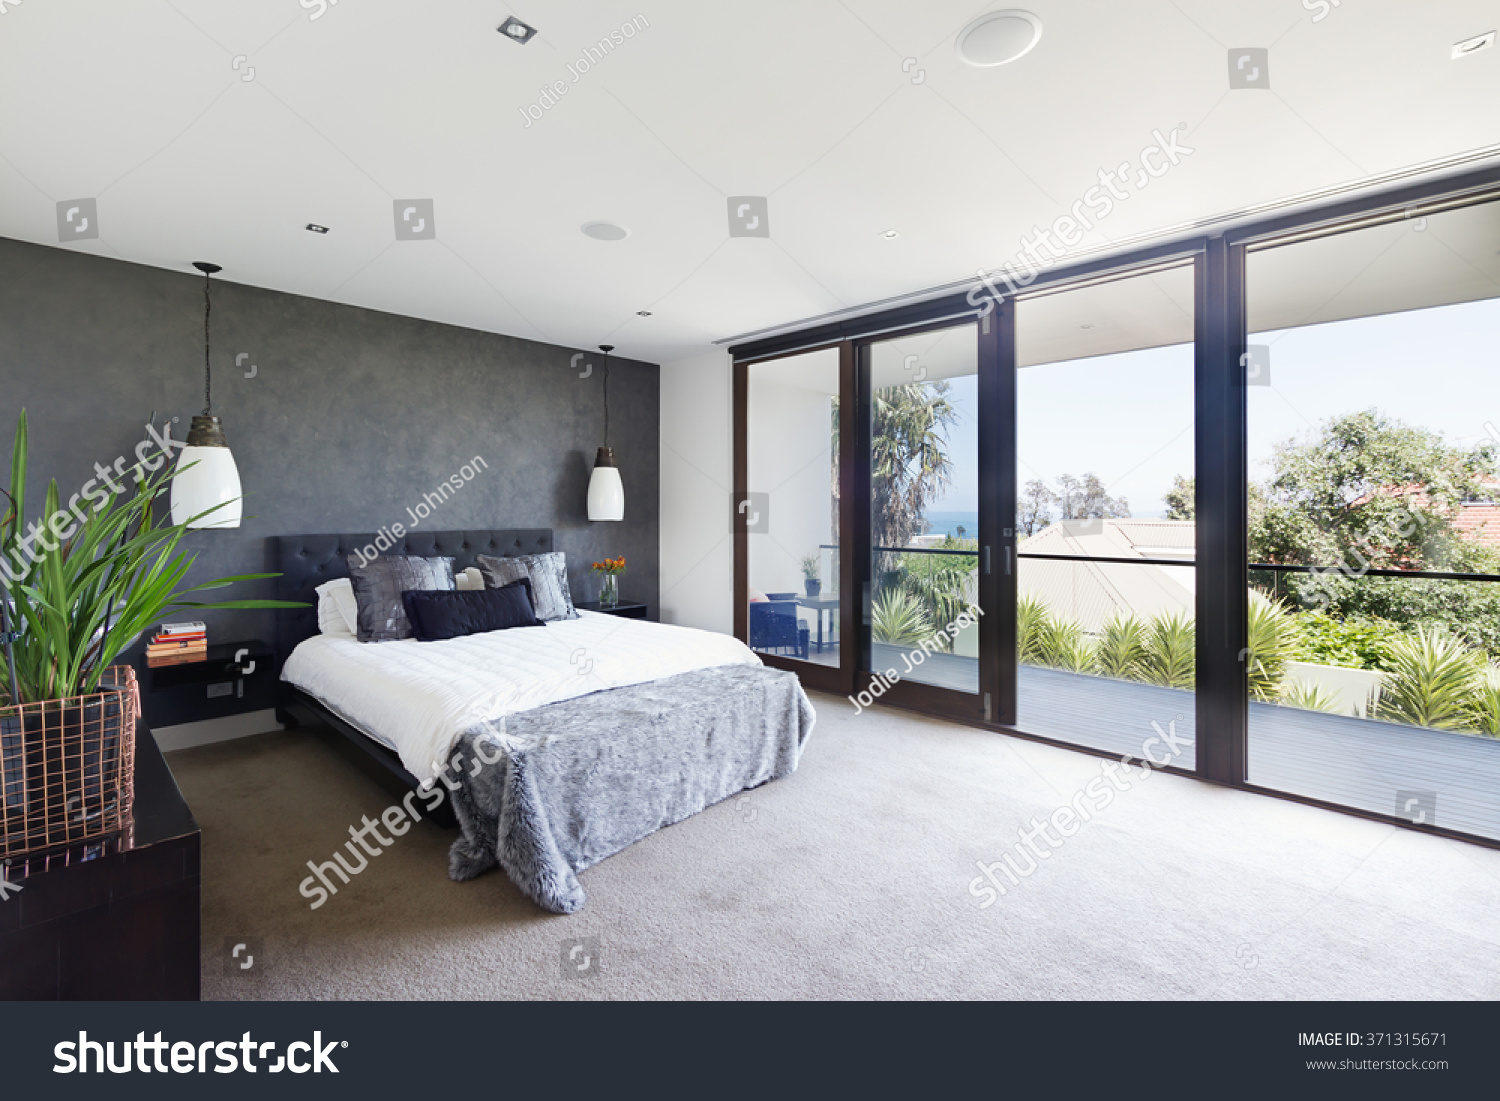 Spacious interior designer master bedroom luxury stock for Interior design bedroom australia